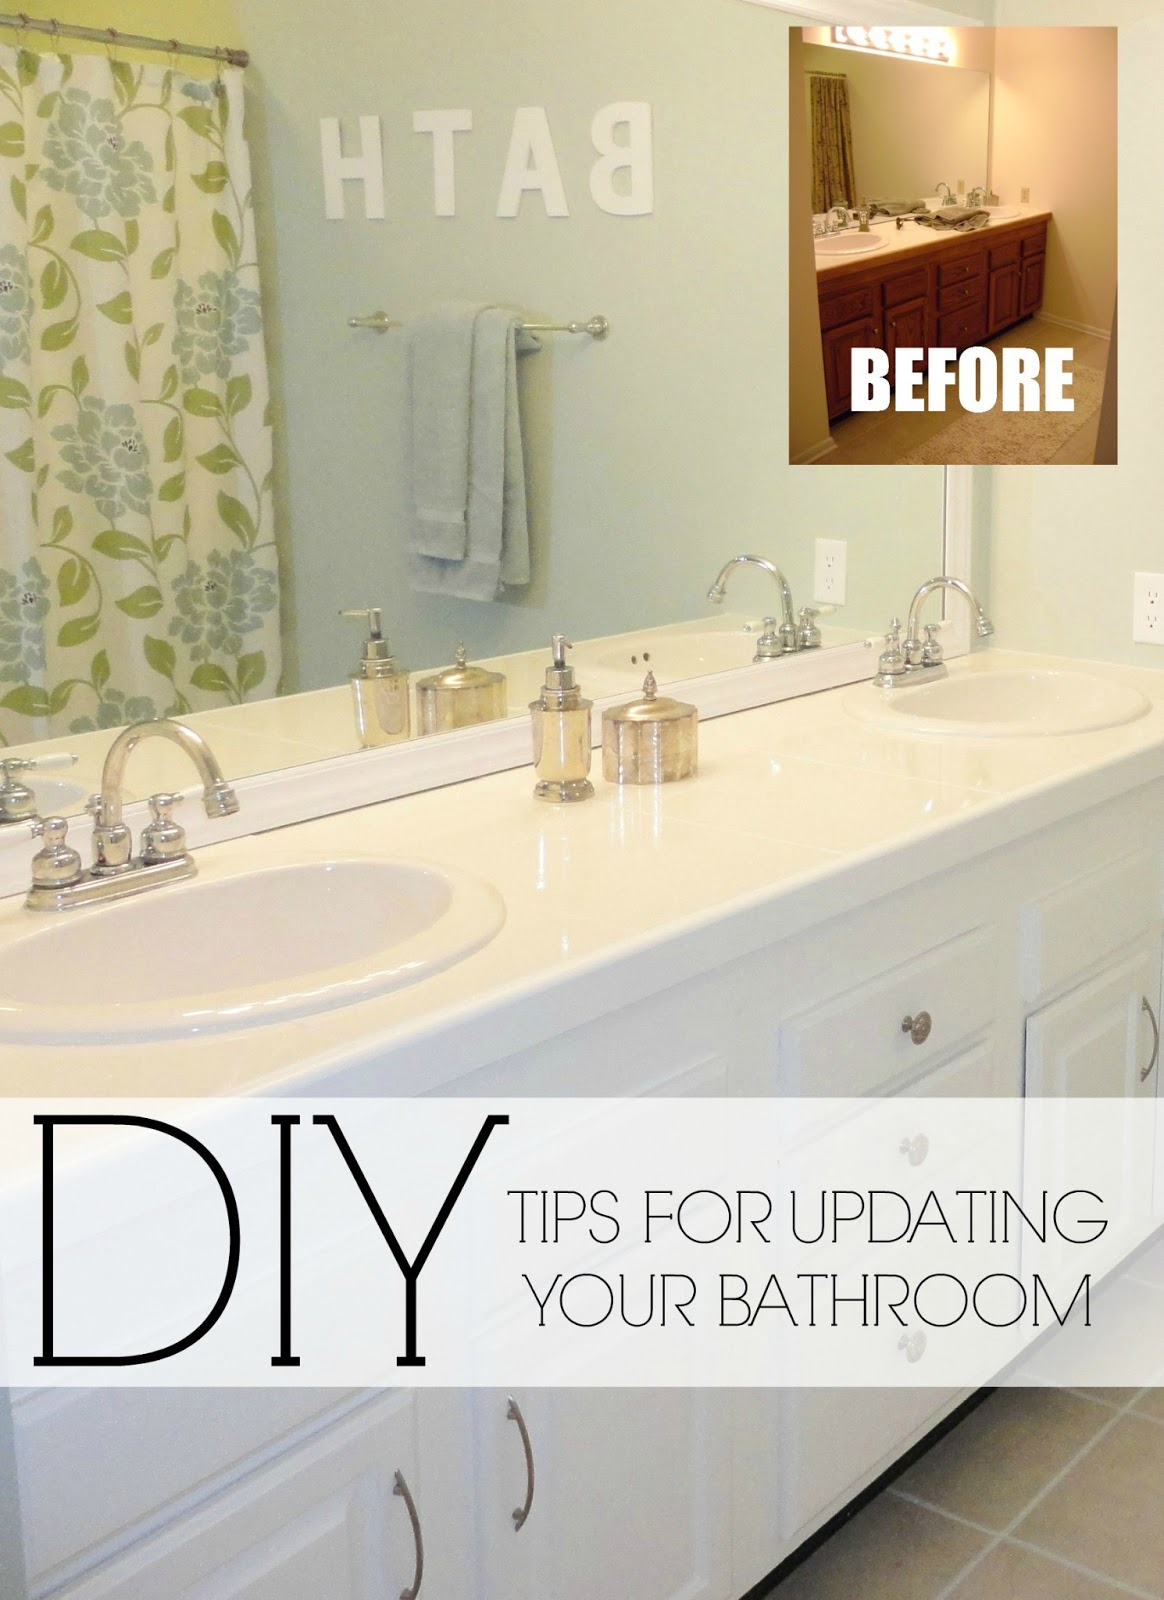 Bathroom Diy Ideas Brilliant Livelovediy Easy Diy Ideas For Updating Your Bathroom Decorating Inspiration